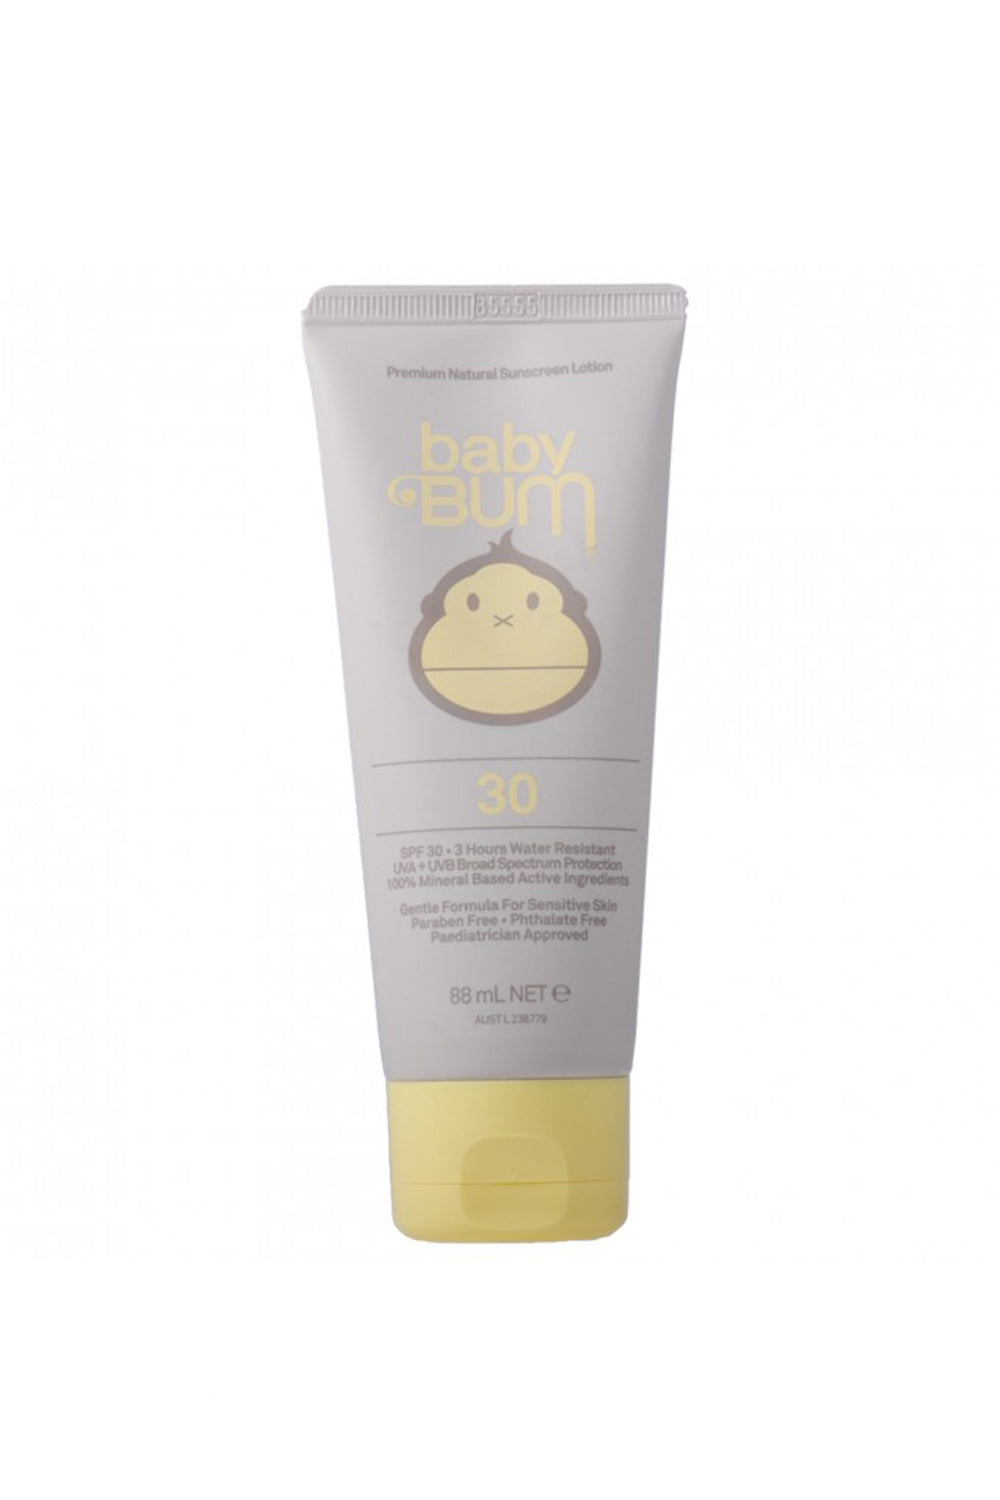 Sun Bum - Baby Bum Premium Natural Sunscreen Lotion SPF 30 88 mL